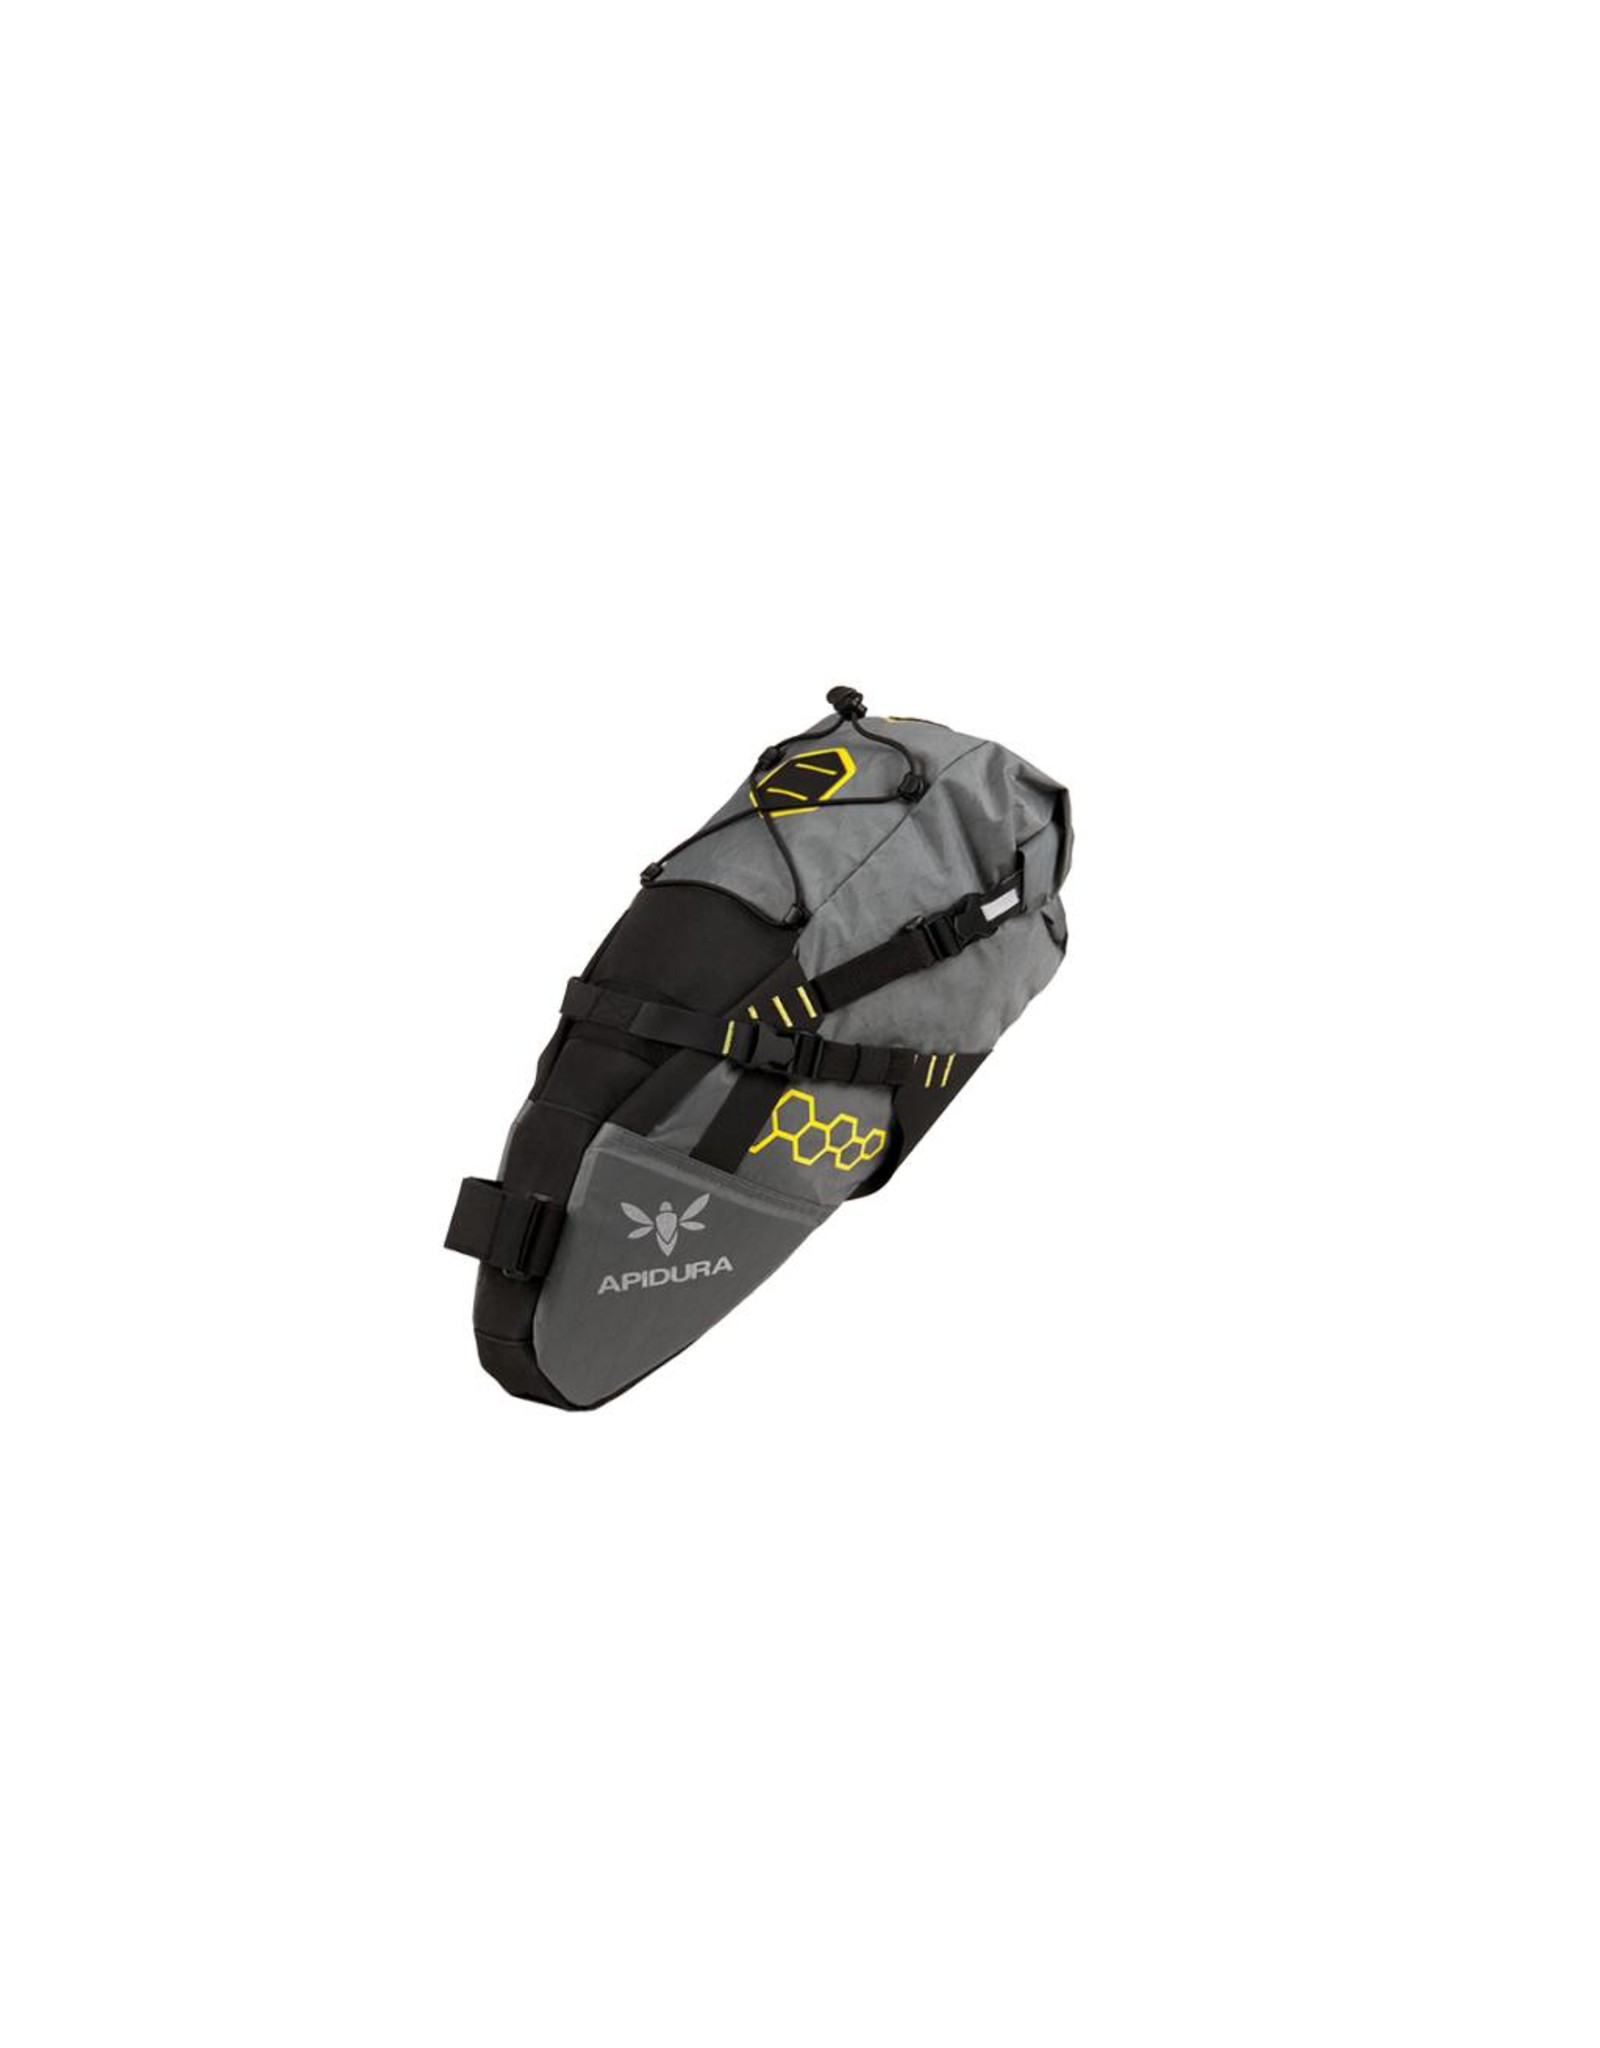 Apidura Apidura Rear Saddle Pack Compact size 11 litre (touring/bikepacking/randonneur/commuter bag)